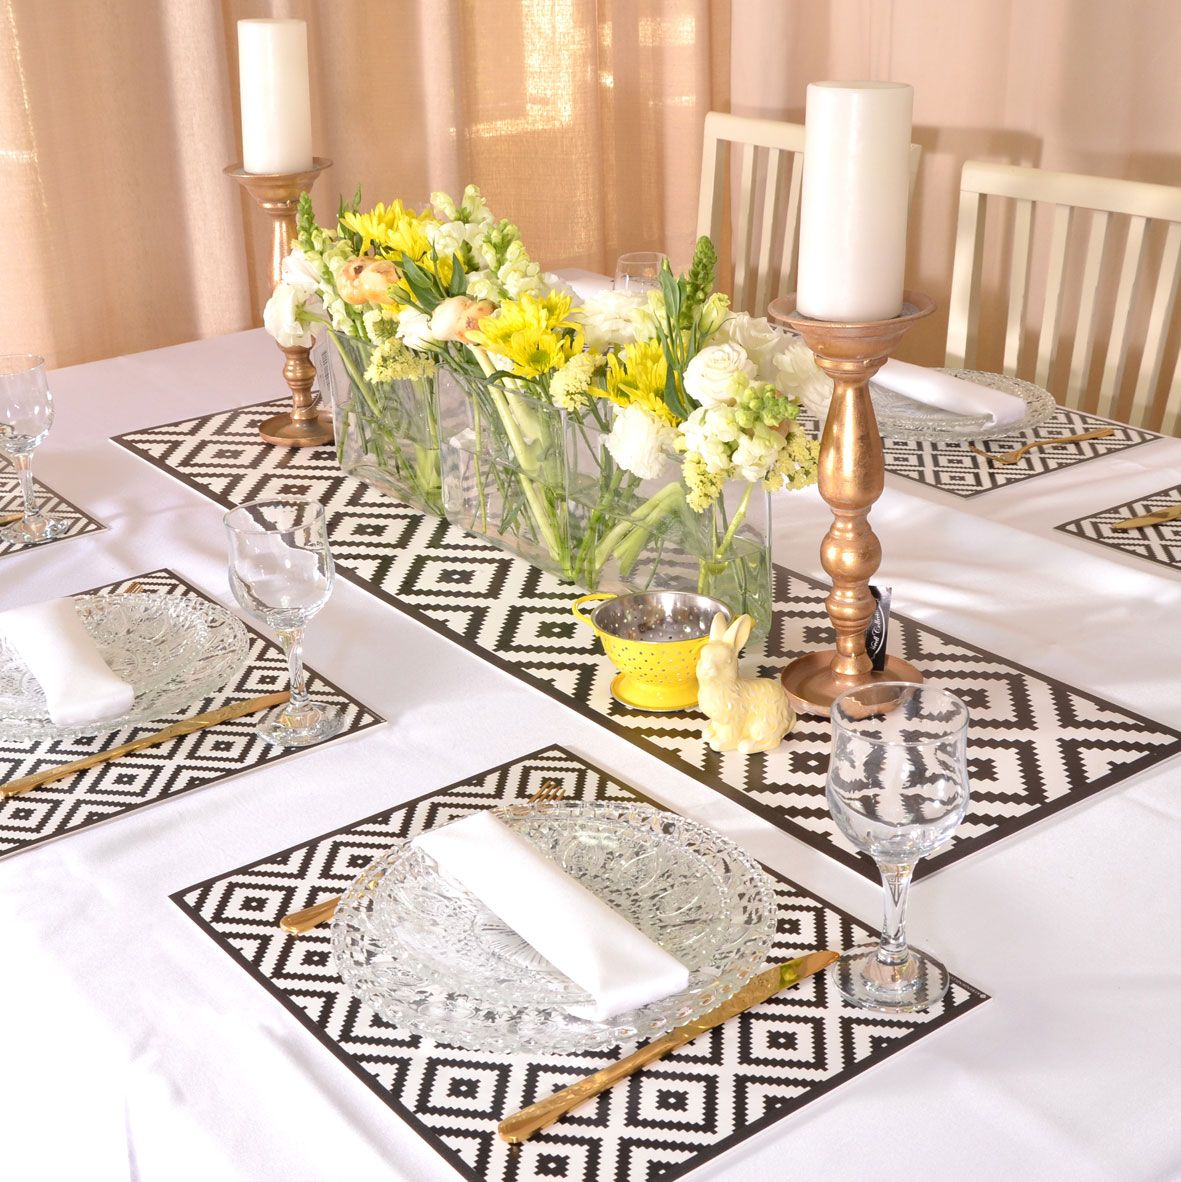 Black White Geometric Placemat Set Scandinavian Style Heat Resistant Table Top Table Runner Functional Decorative Dinnerware Table Runner Size Decorative Dinnerware Bbq Table